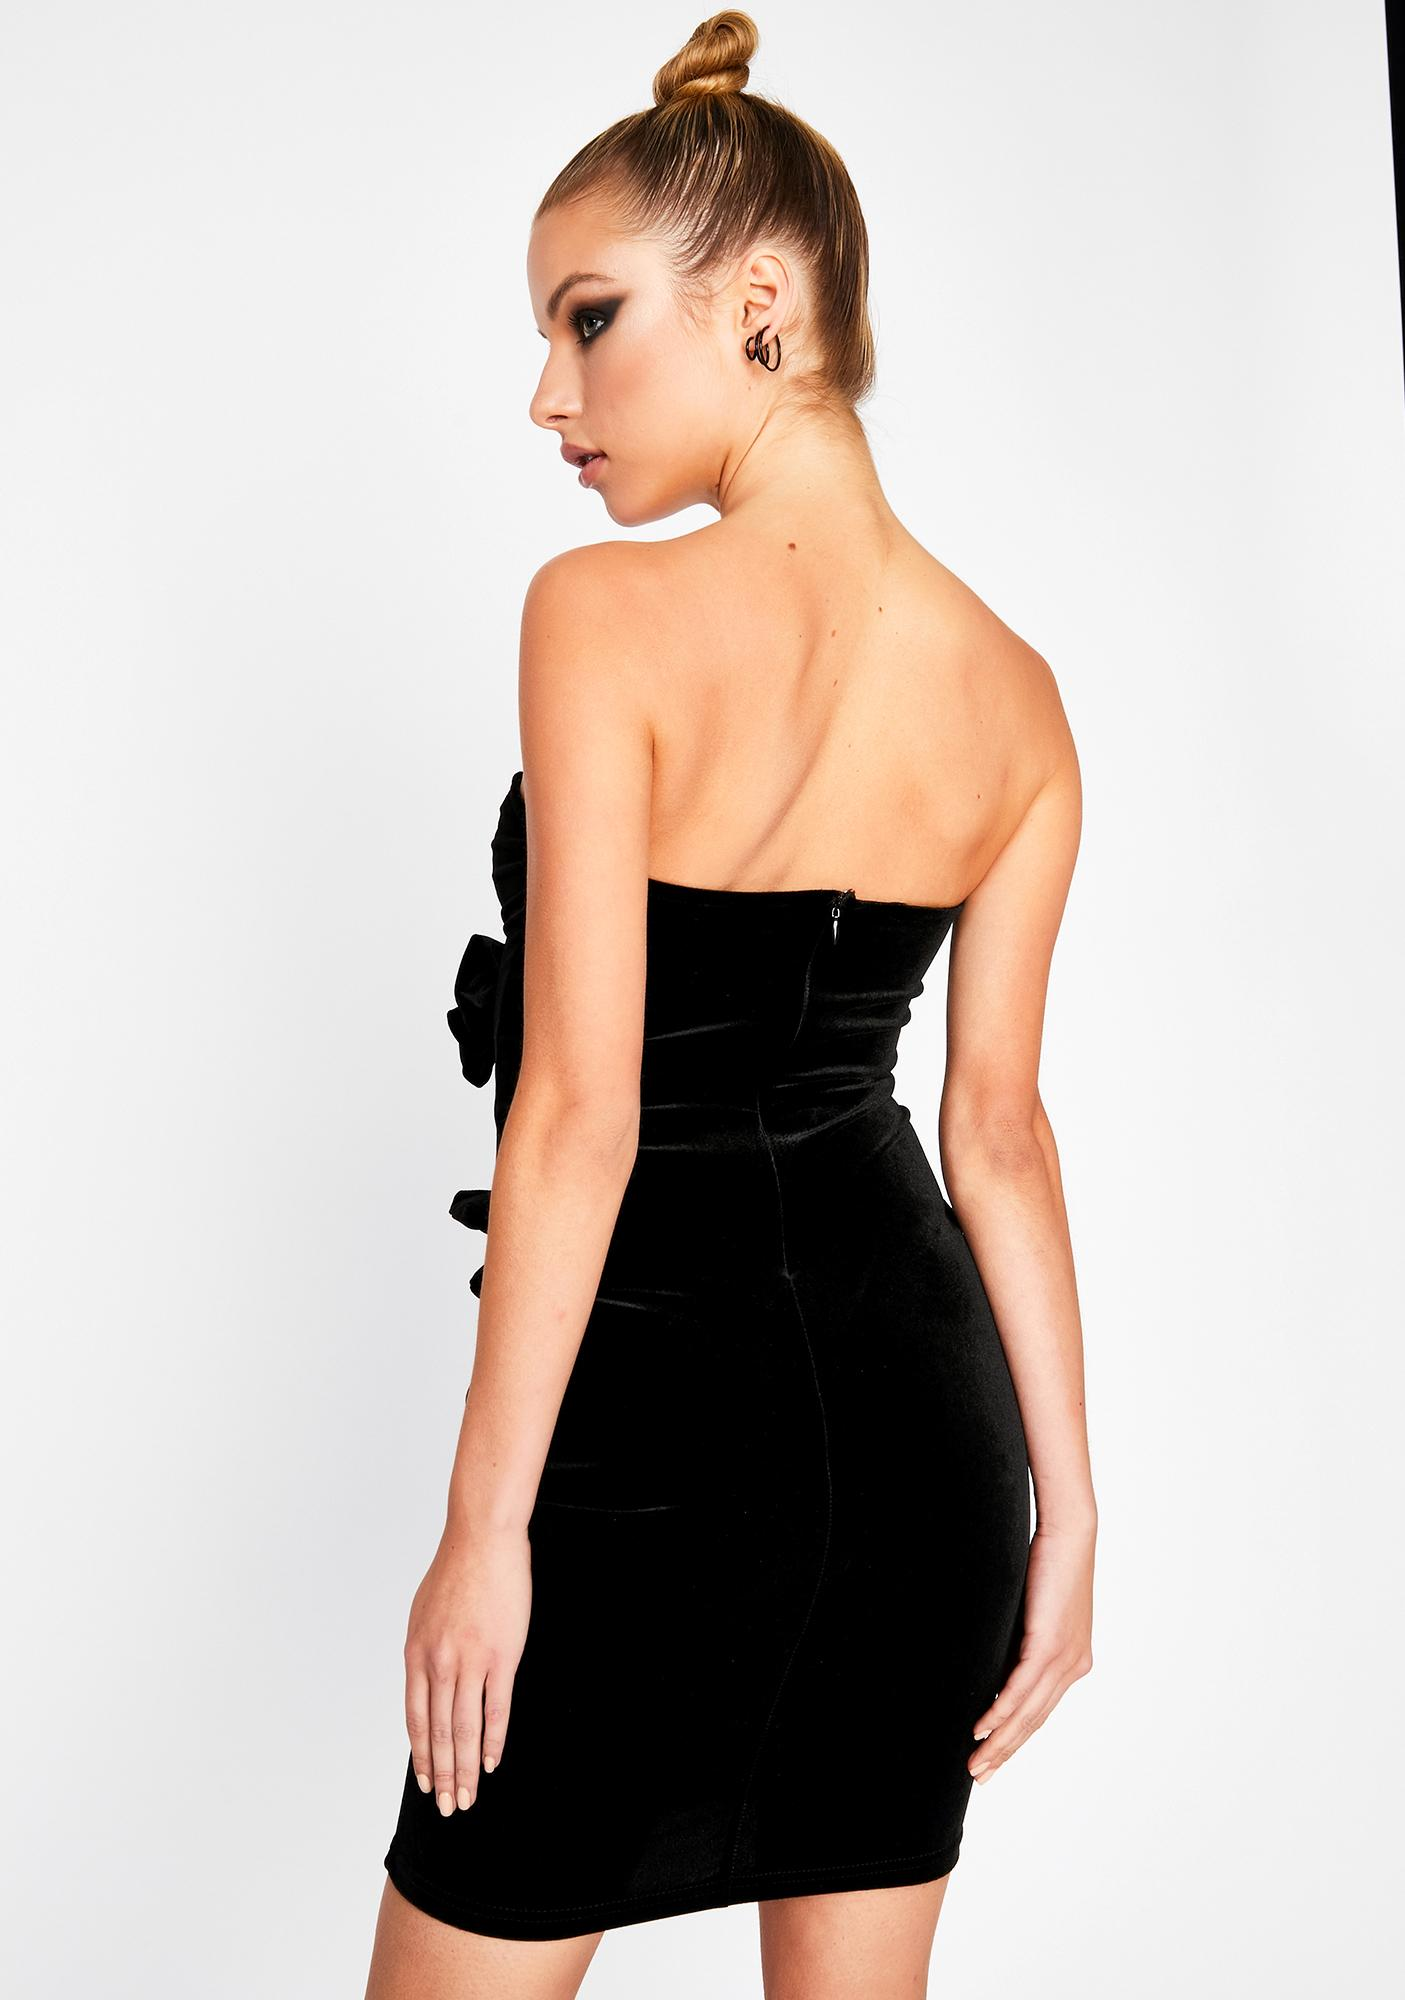 Slick Strapped In Velvet Dress